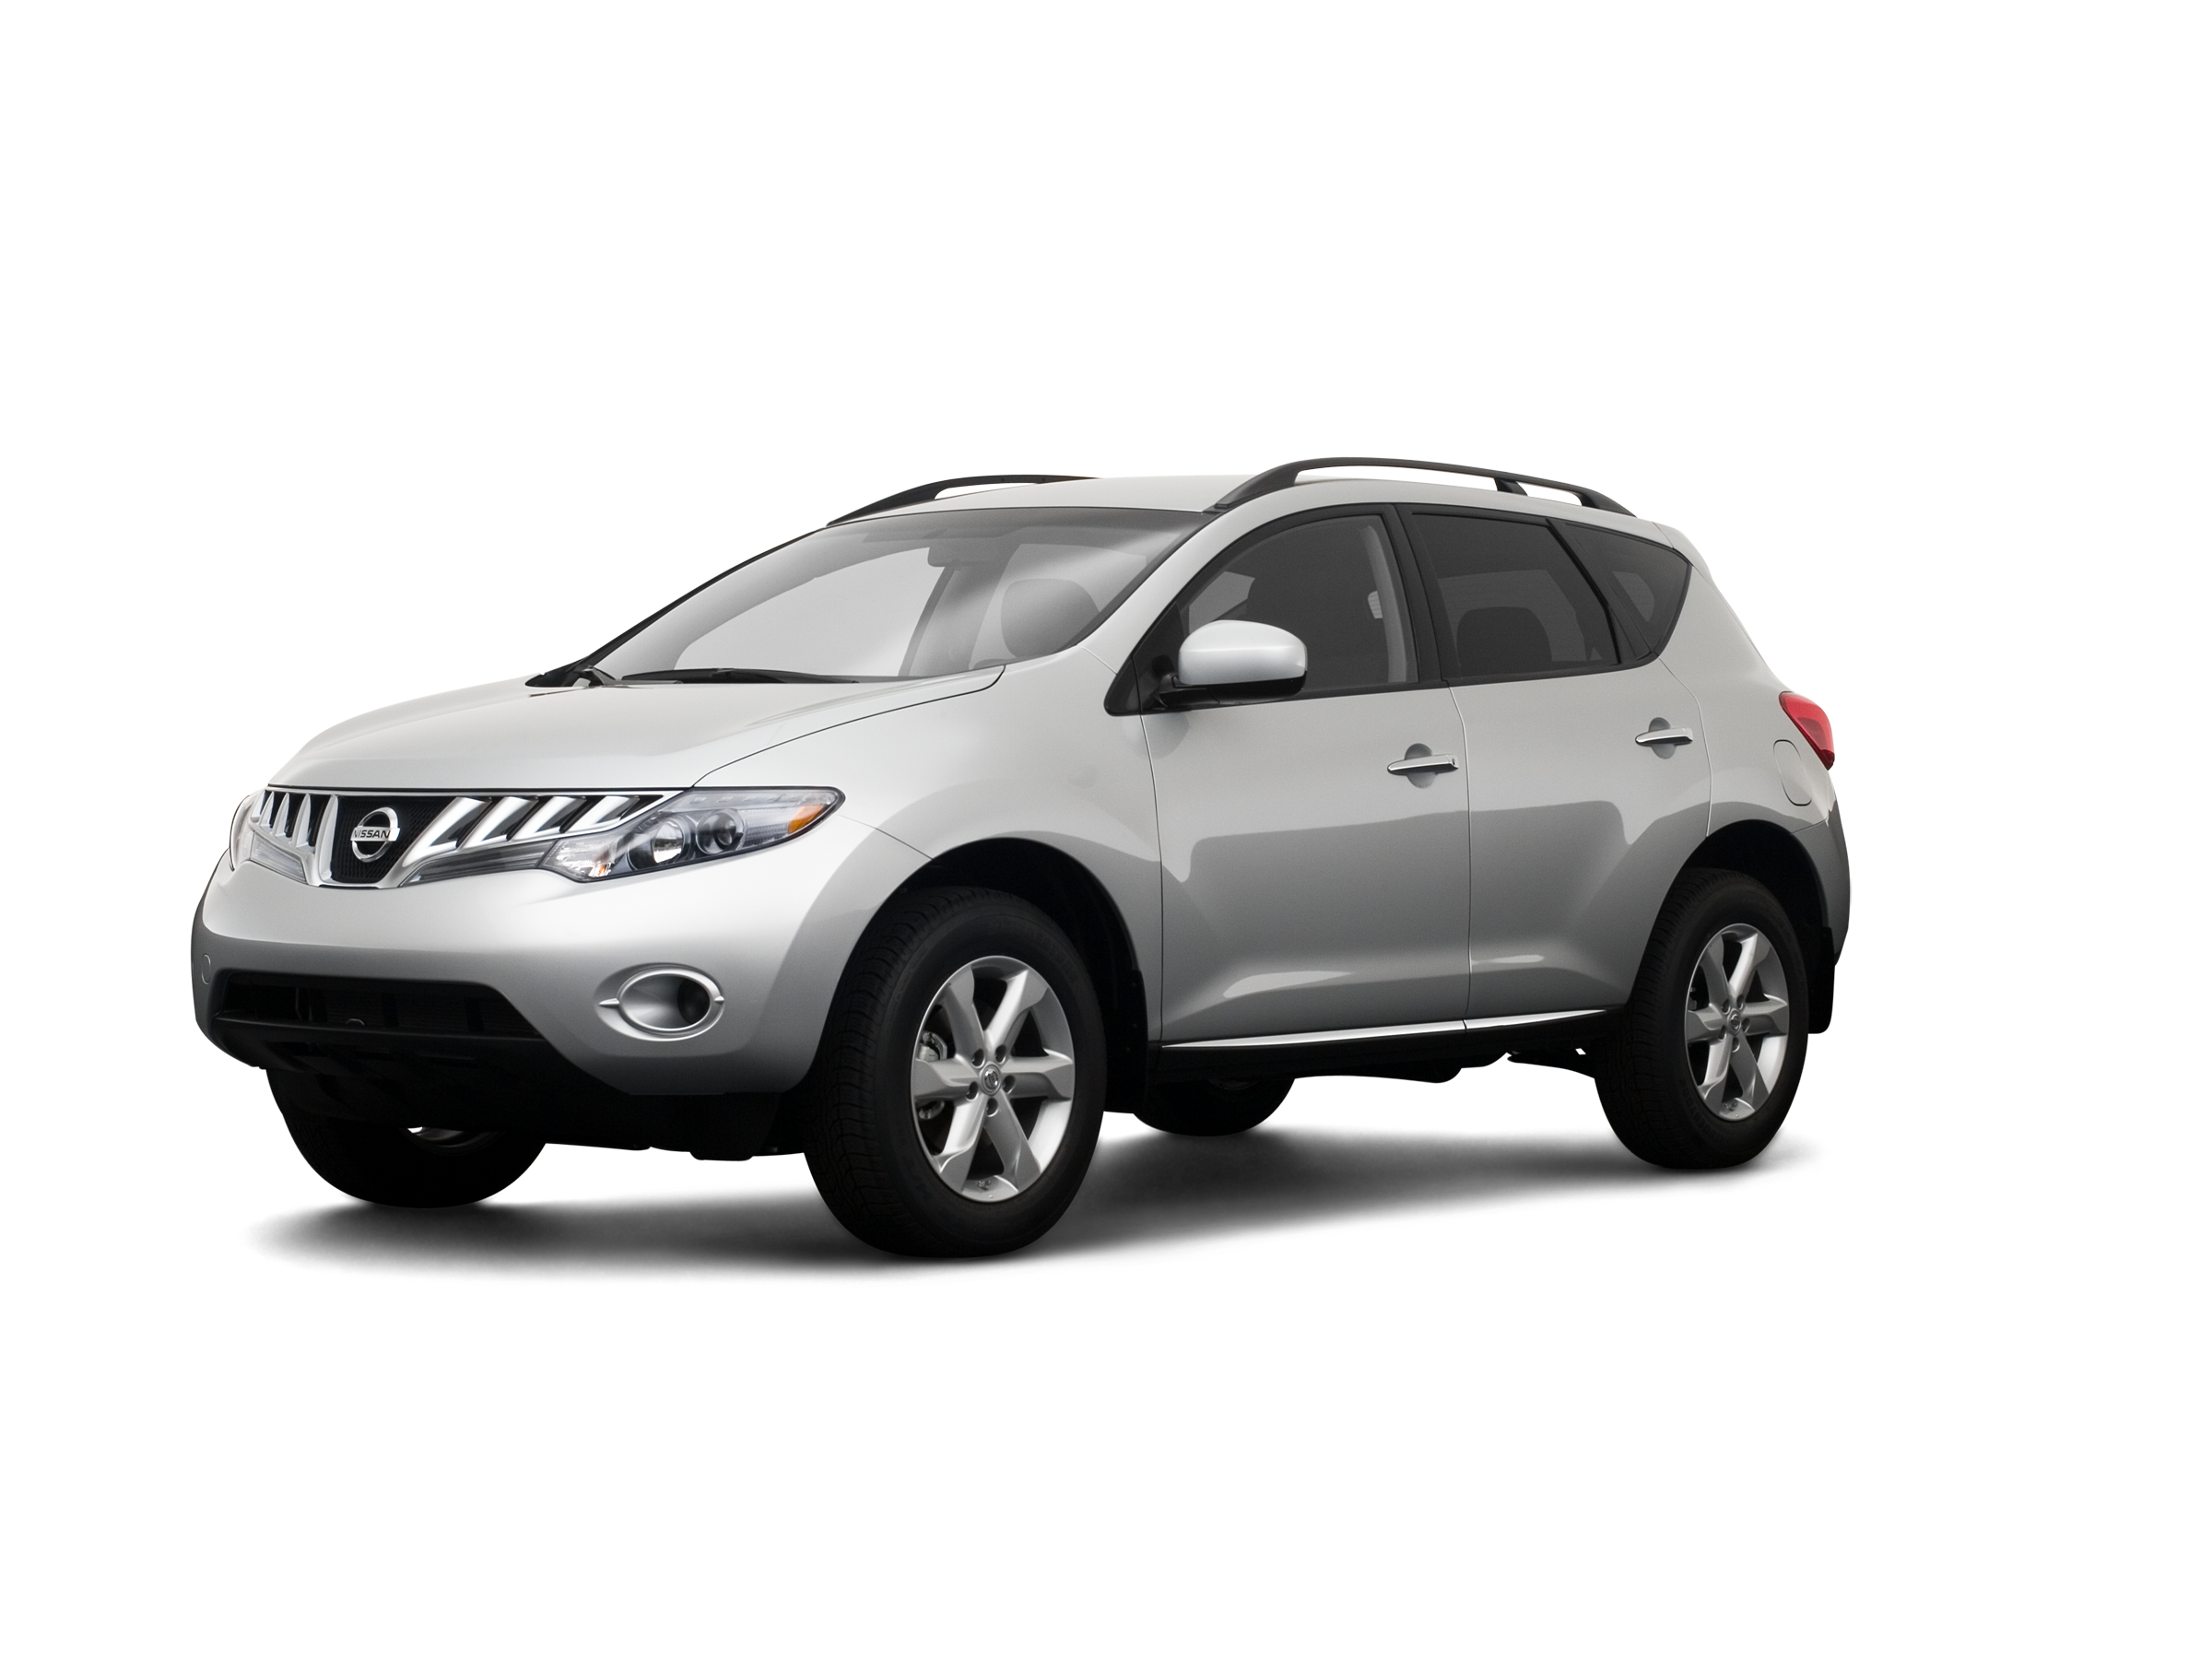 2009 Nissan Murano Values Cars For Sale Kelley Blue Book